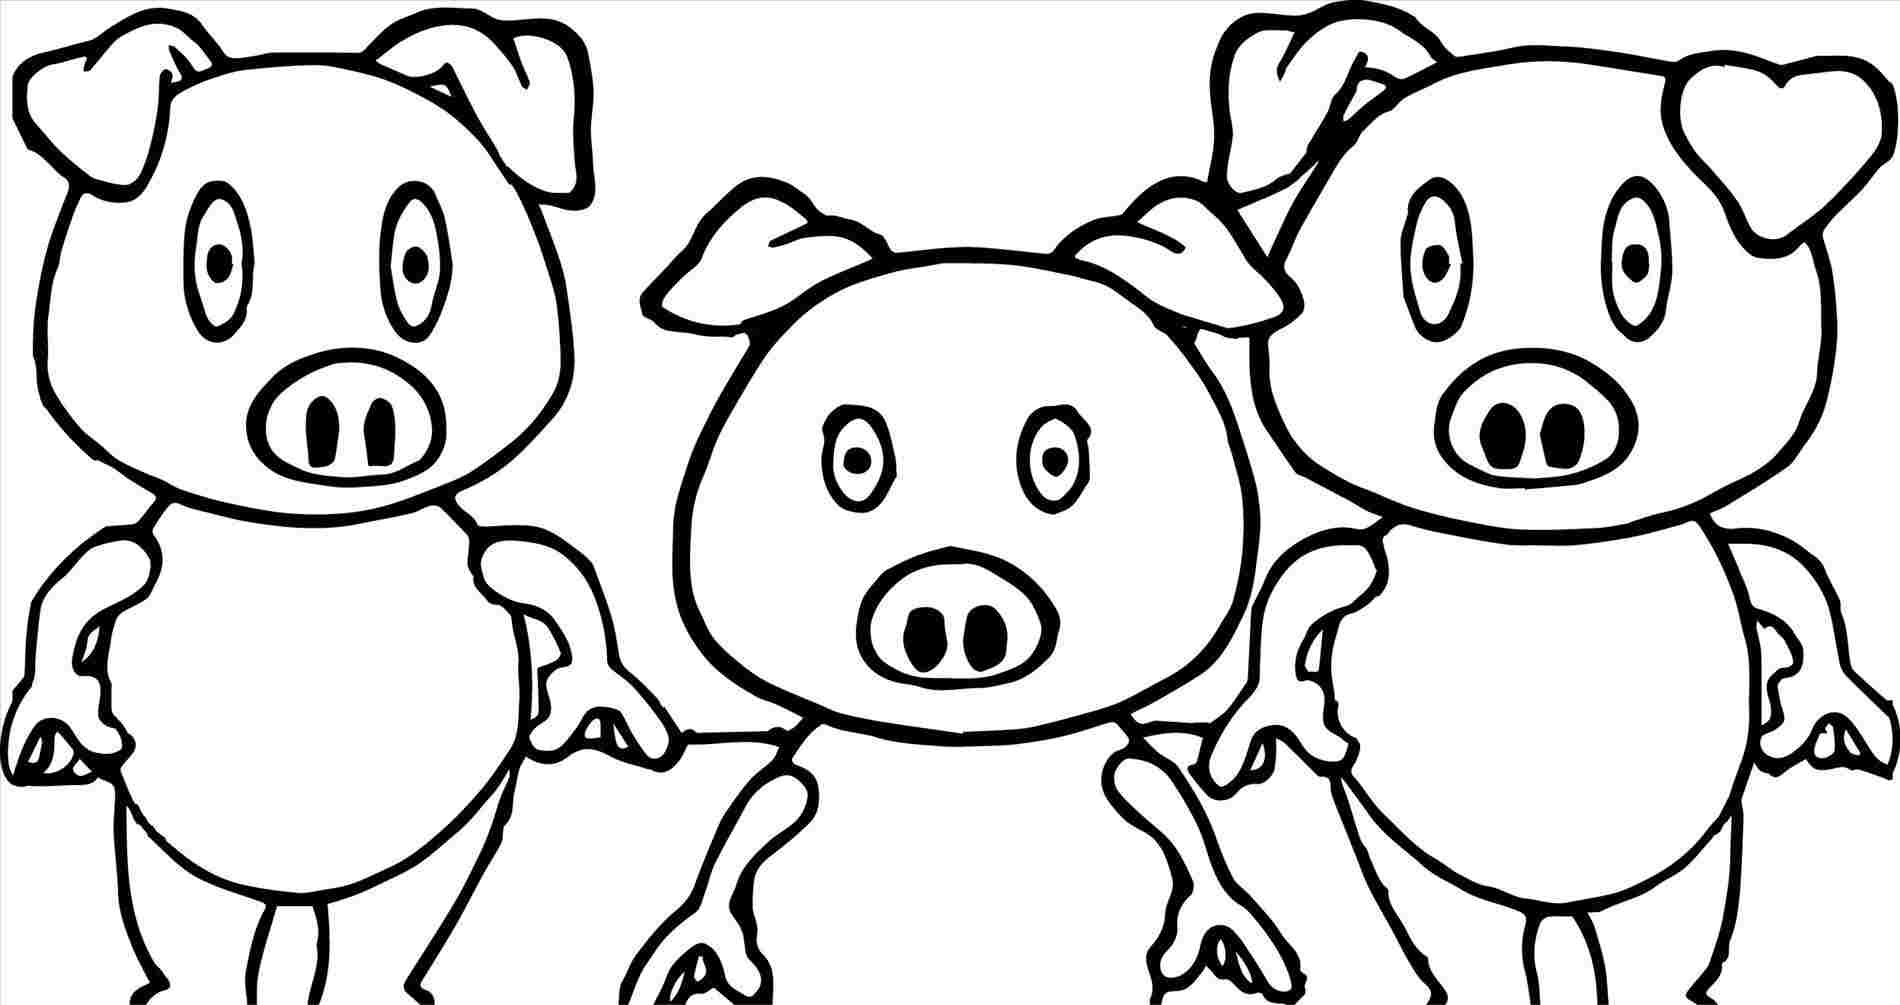 how to draw a pig cute pig drawing at getdrawings free download a how pig to draw